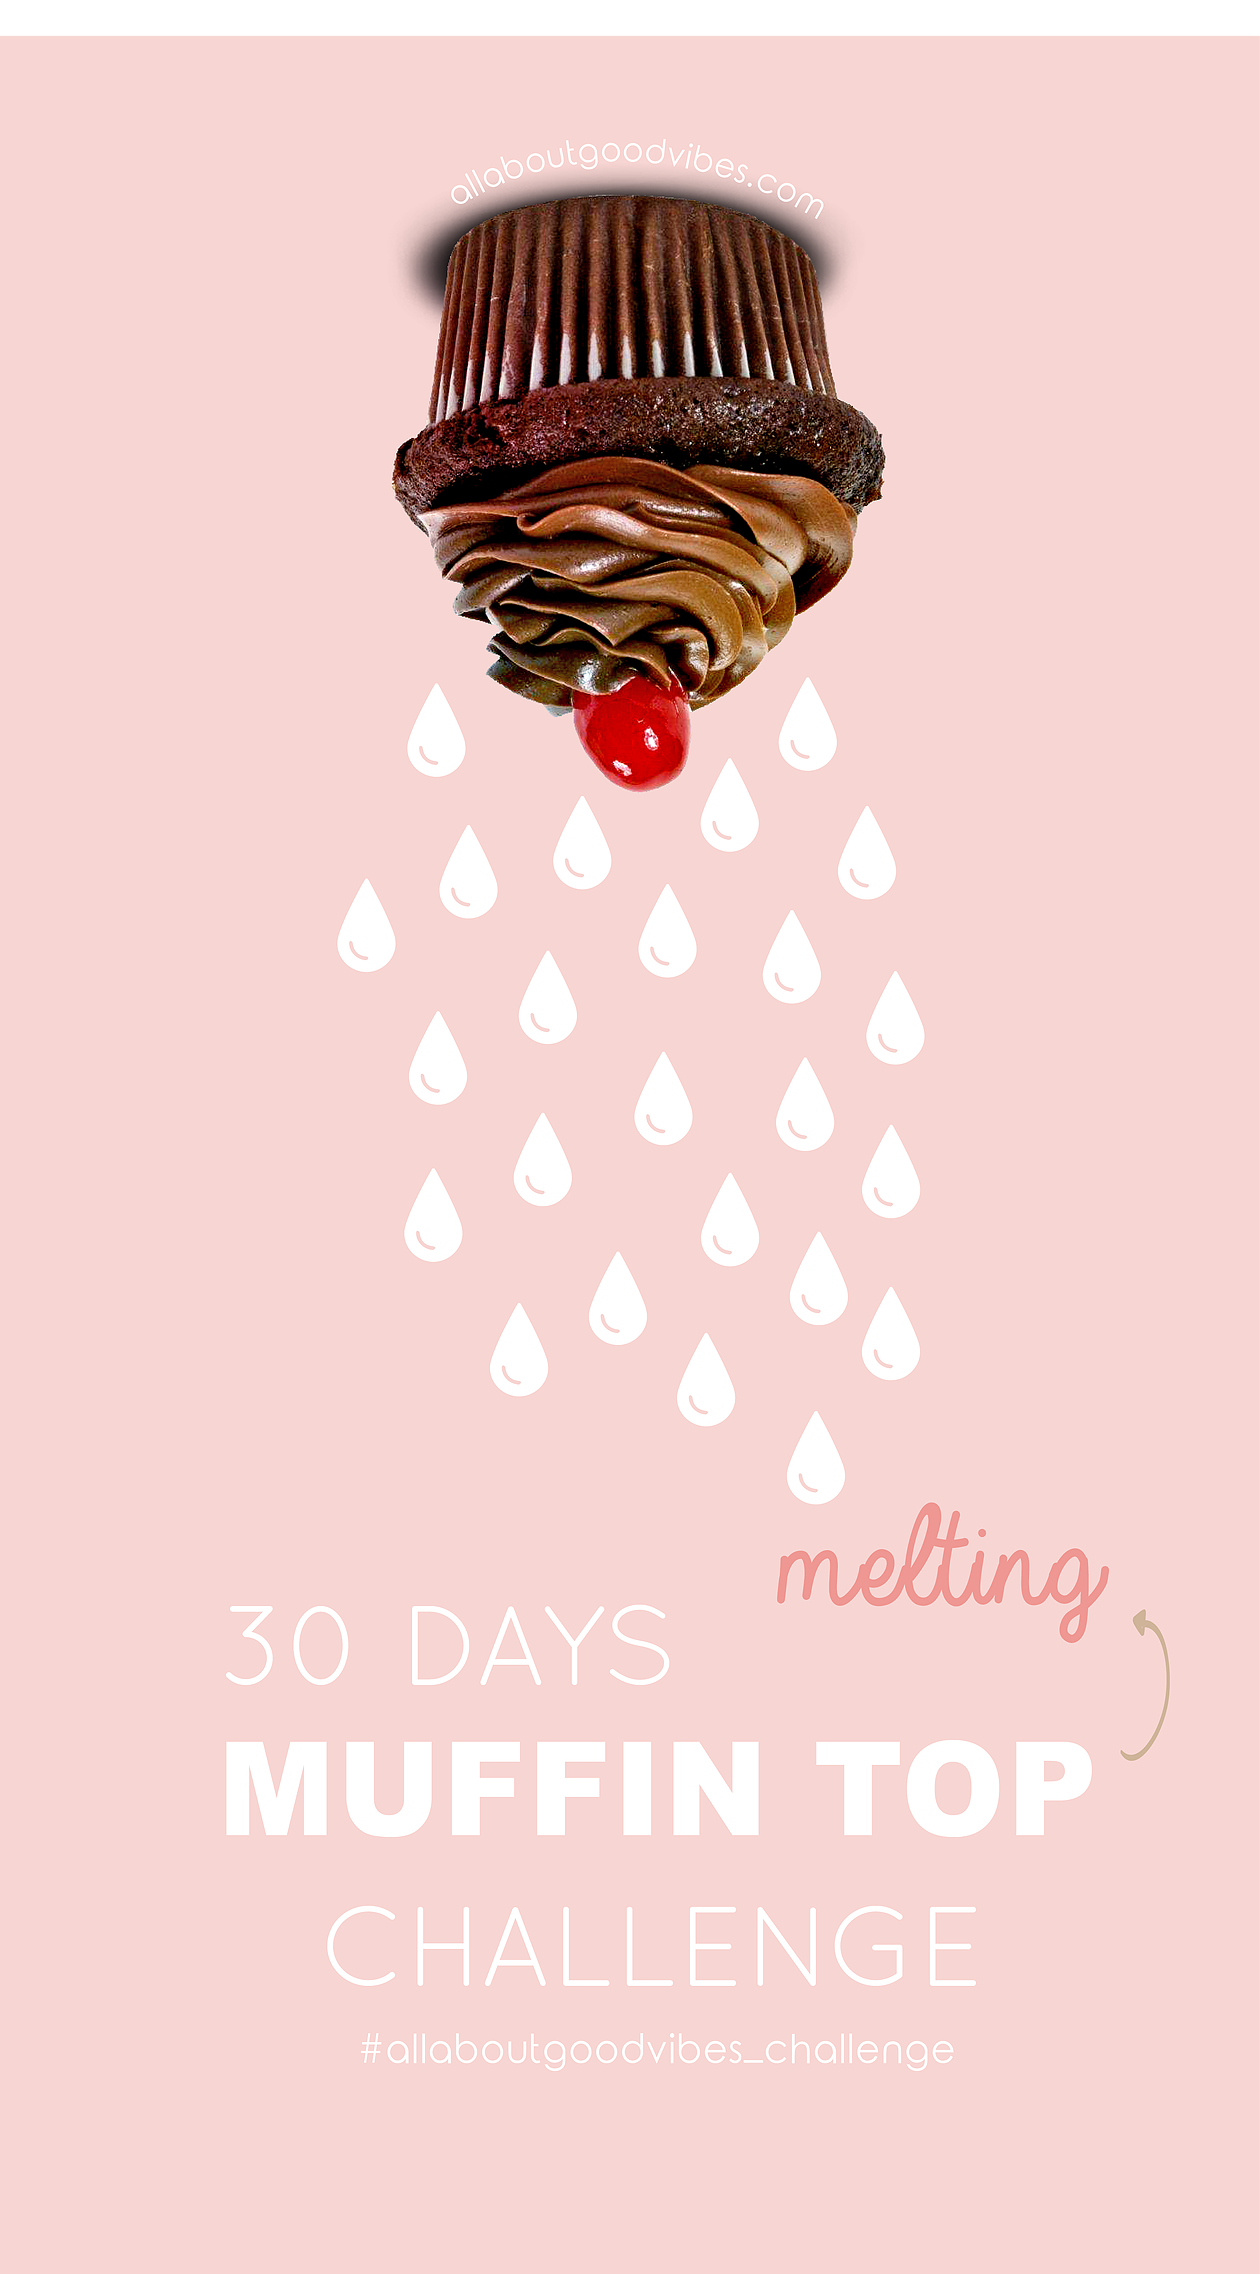 30 Days Muffin Top Challenge Free Printable Download @Allaboutgoodvibes